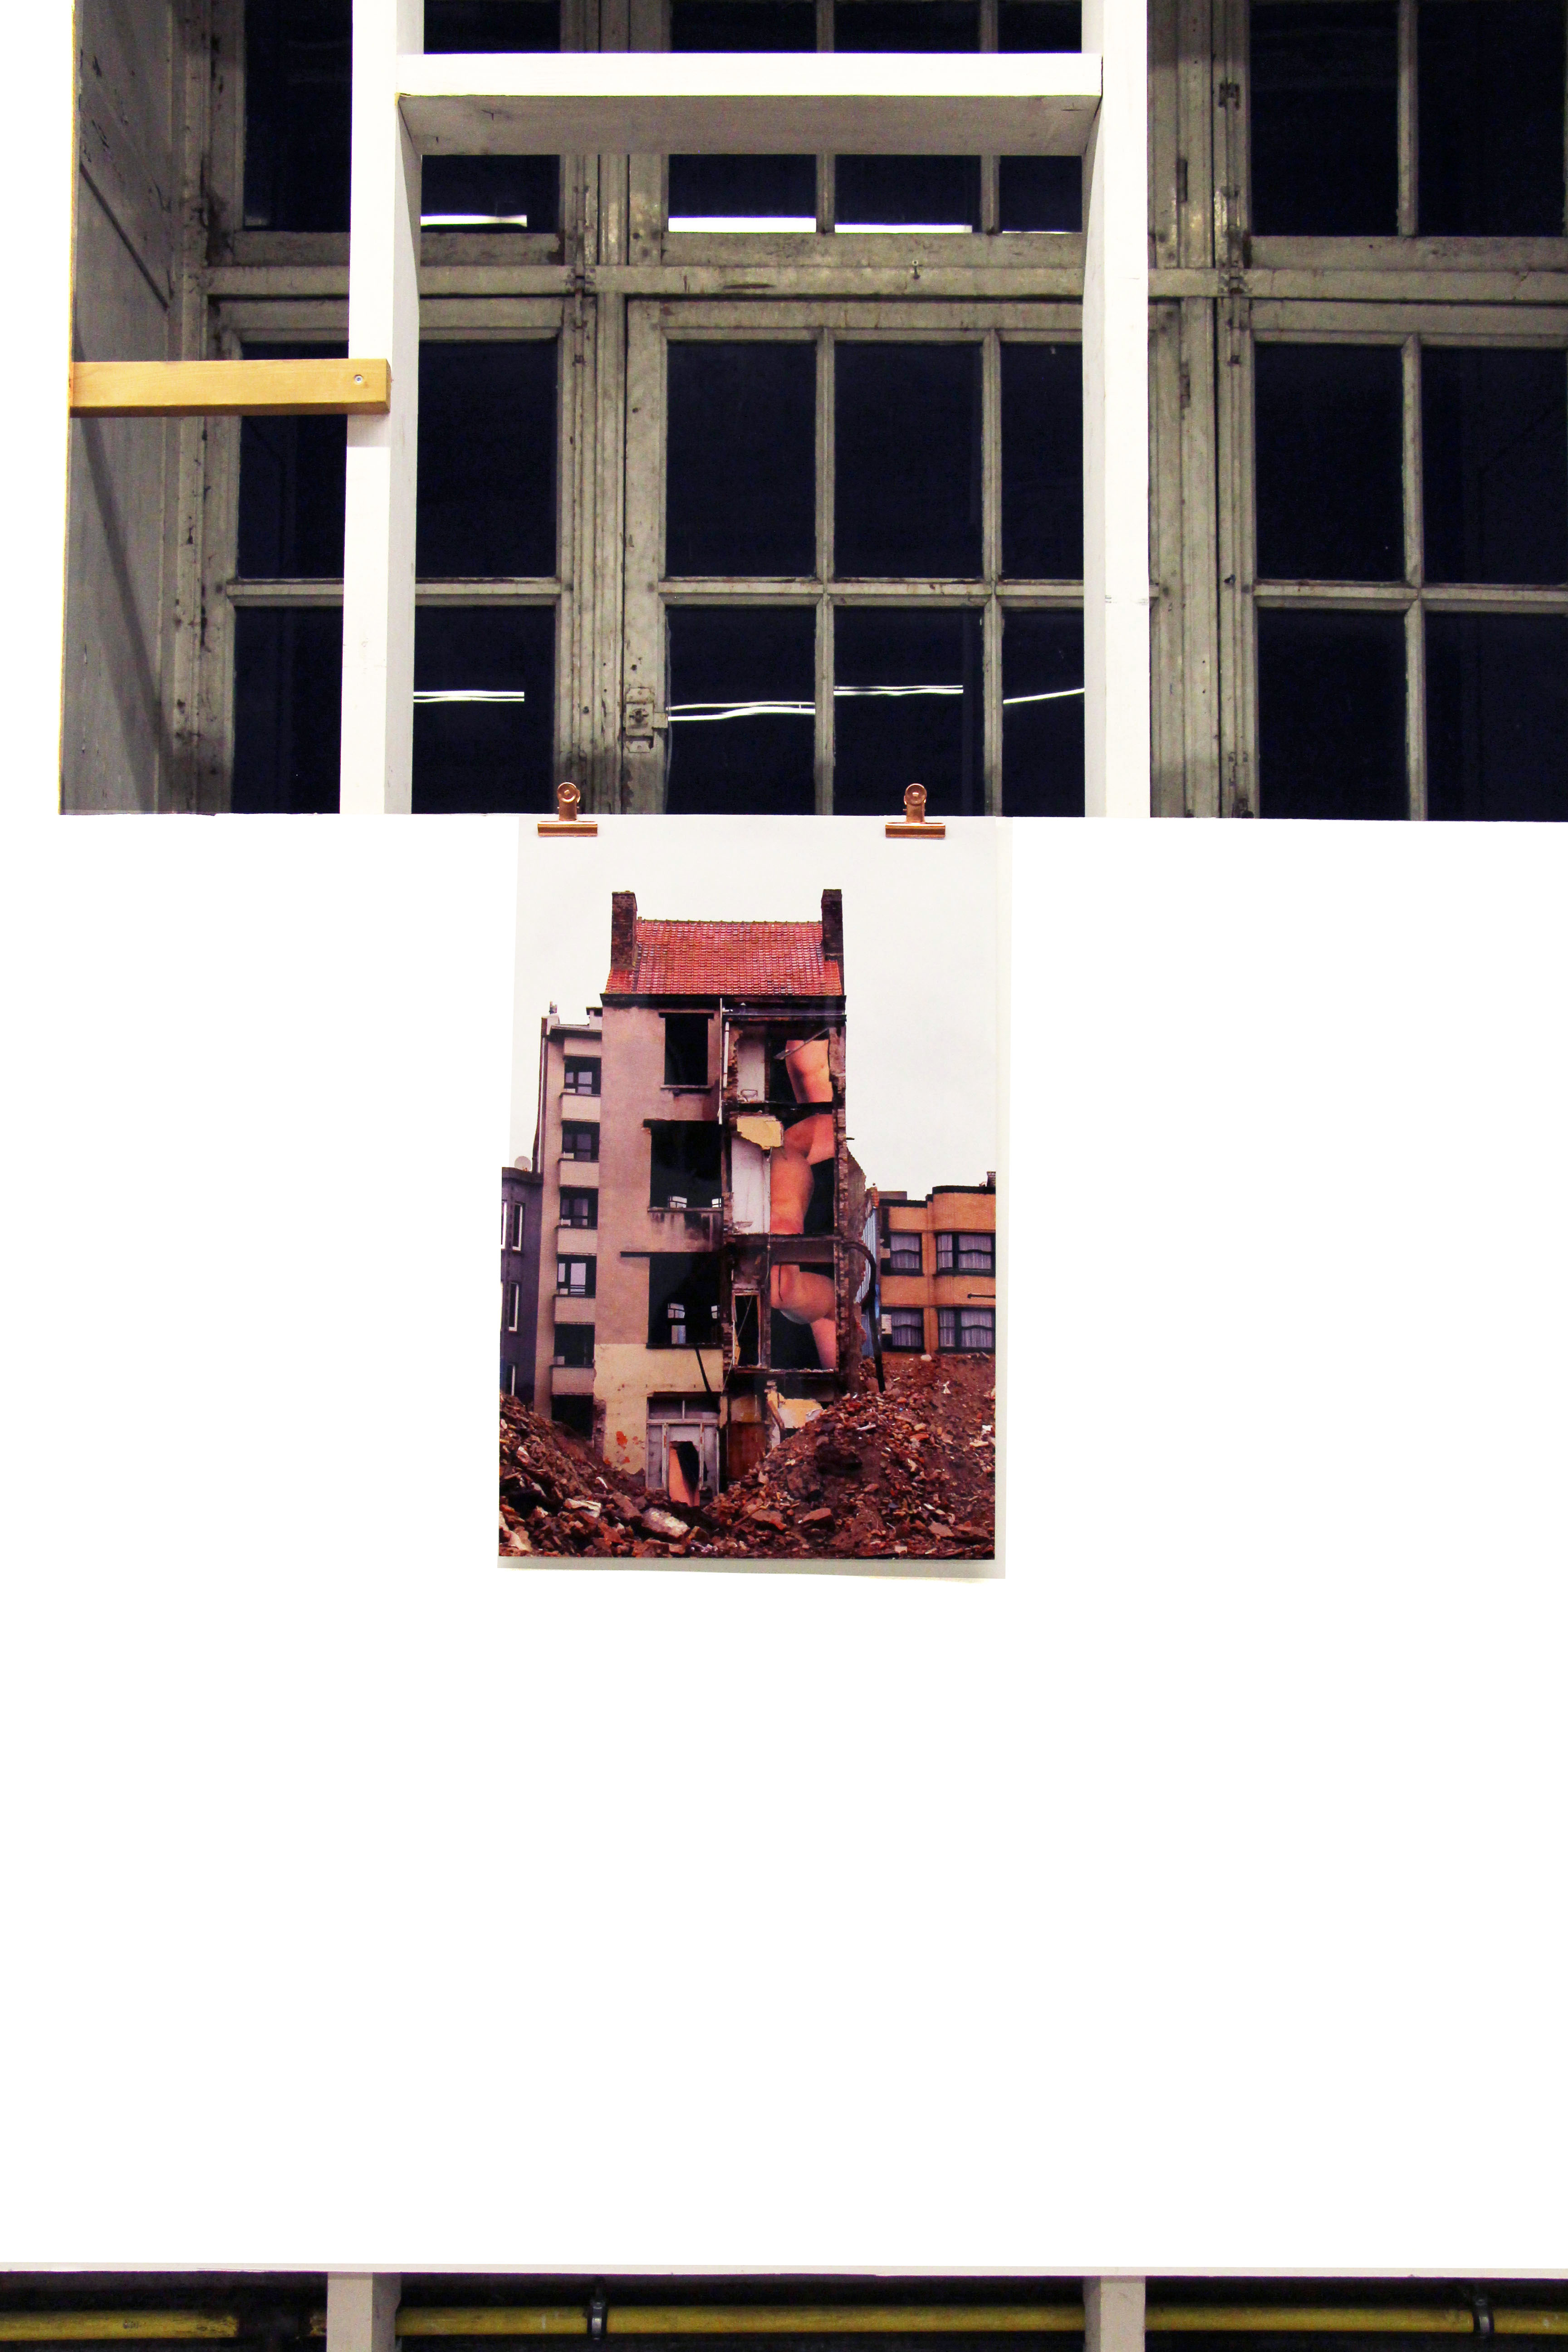 collage art, installationart, belgian artist, collage art belgium